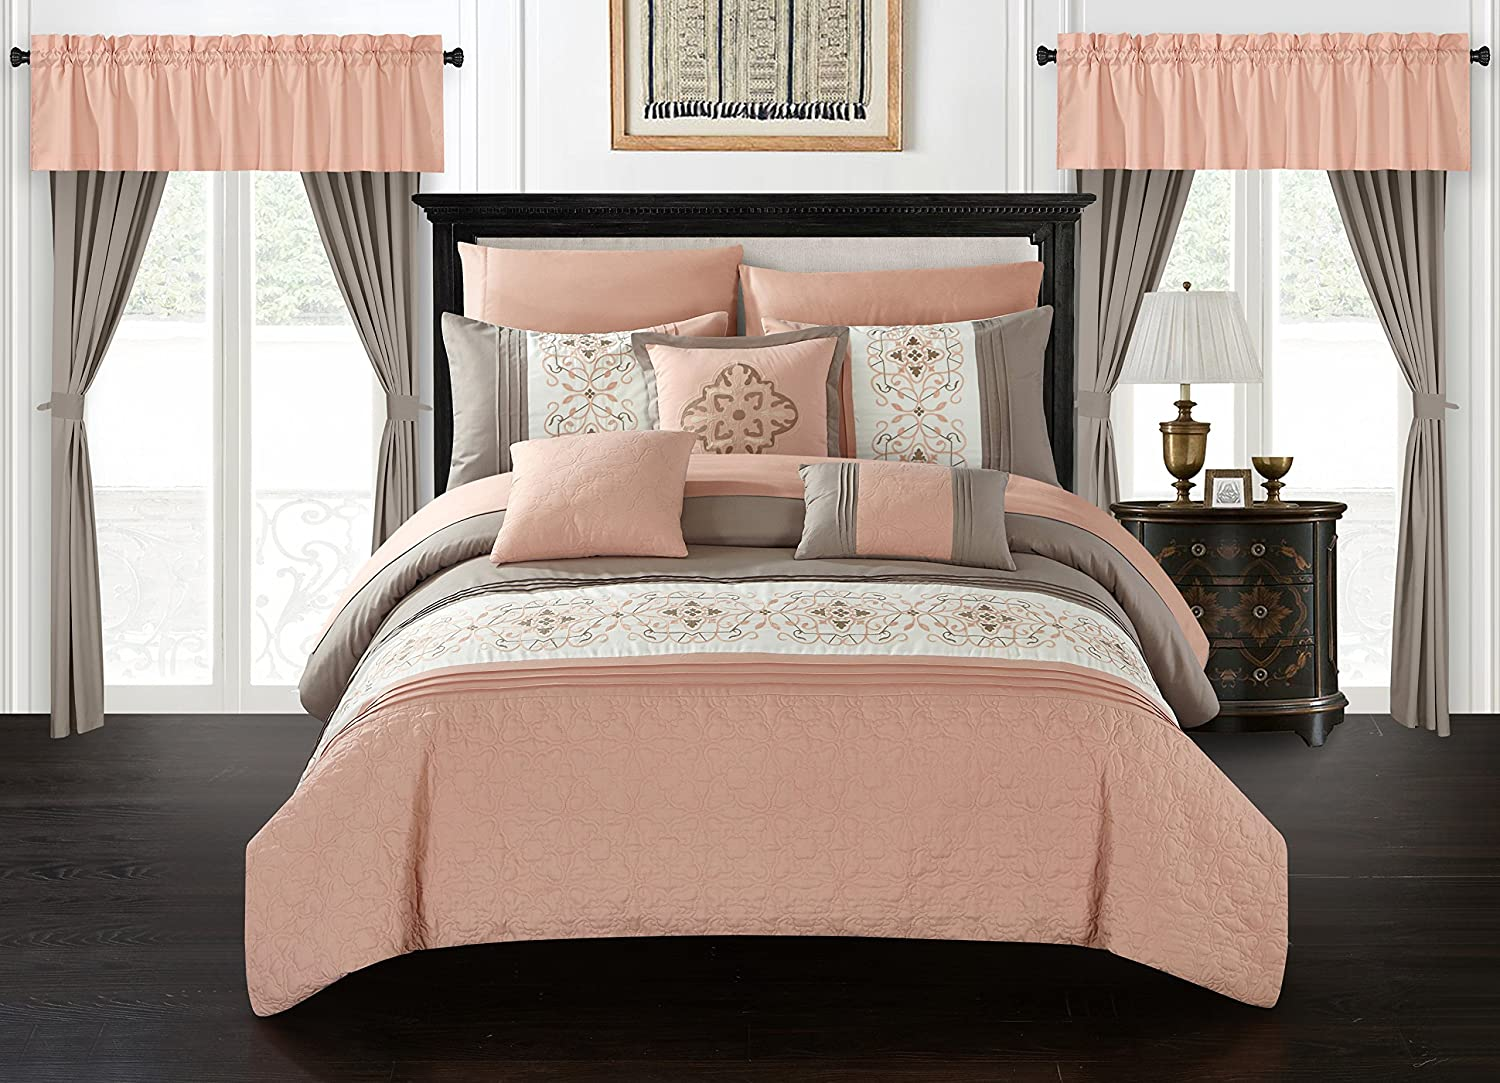 Chic Home Renard 20 Piece Comforter Set Color Block Floral Embroidered Bed in a Bag Bedding - Sheets Window Treatments Decorative Pillows Shams Included, Queen Coral